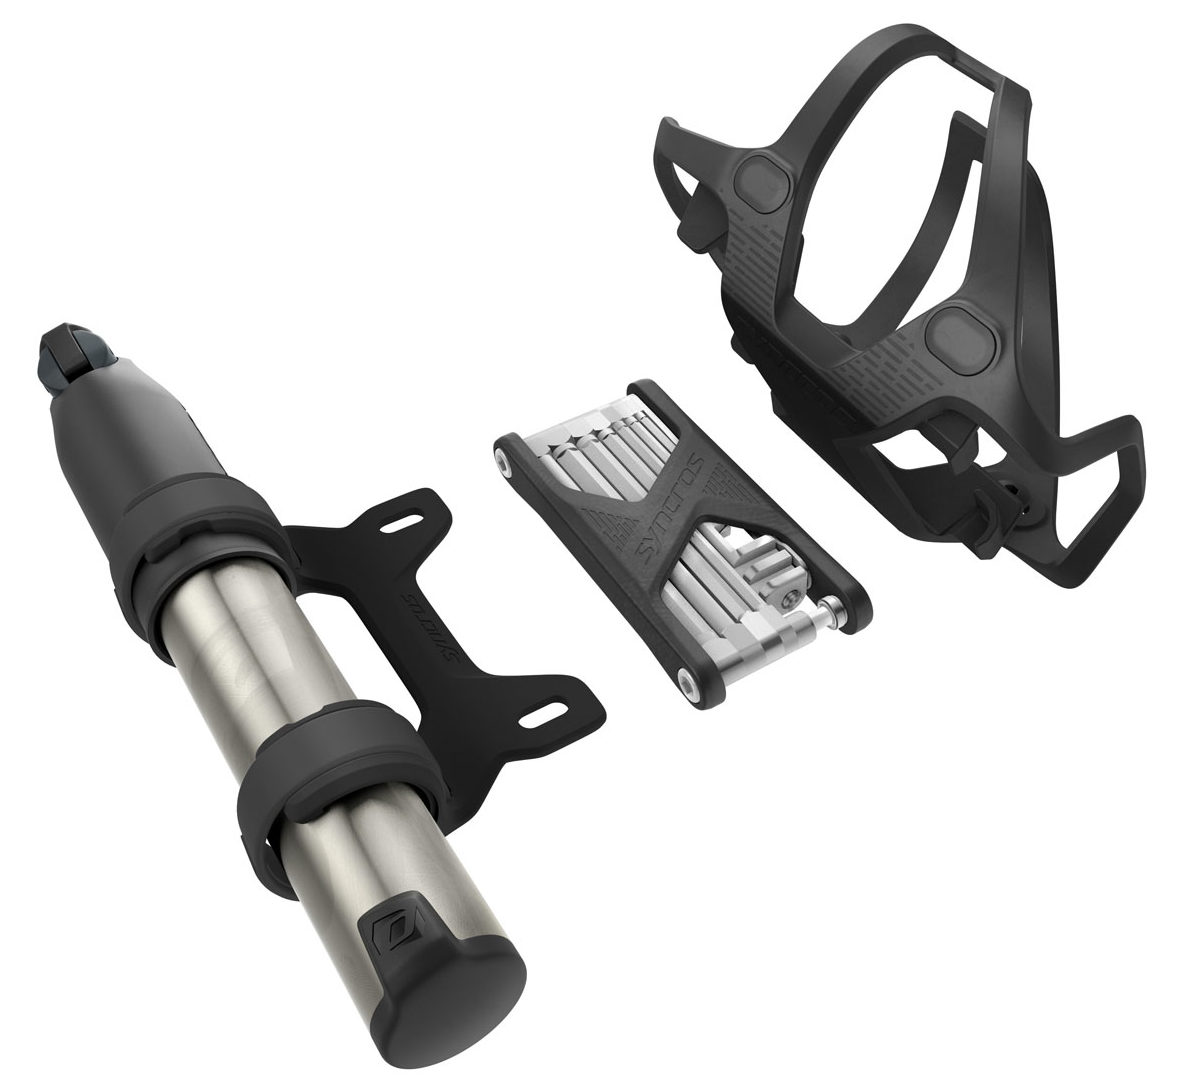 Syncros iS Tailor Cage suits integrated storage for bottle, multi tool, & pump or CO2